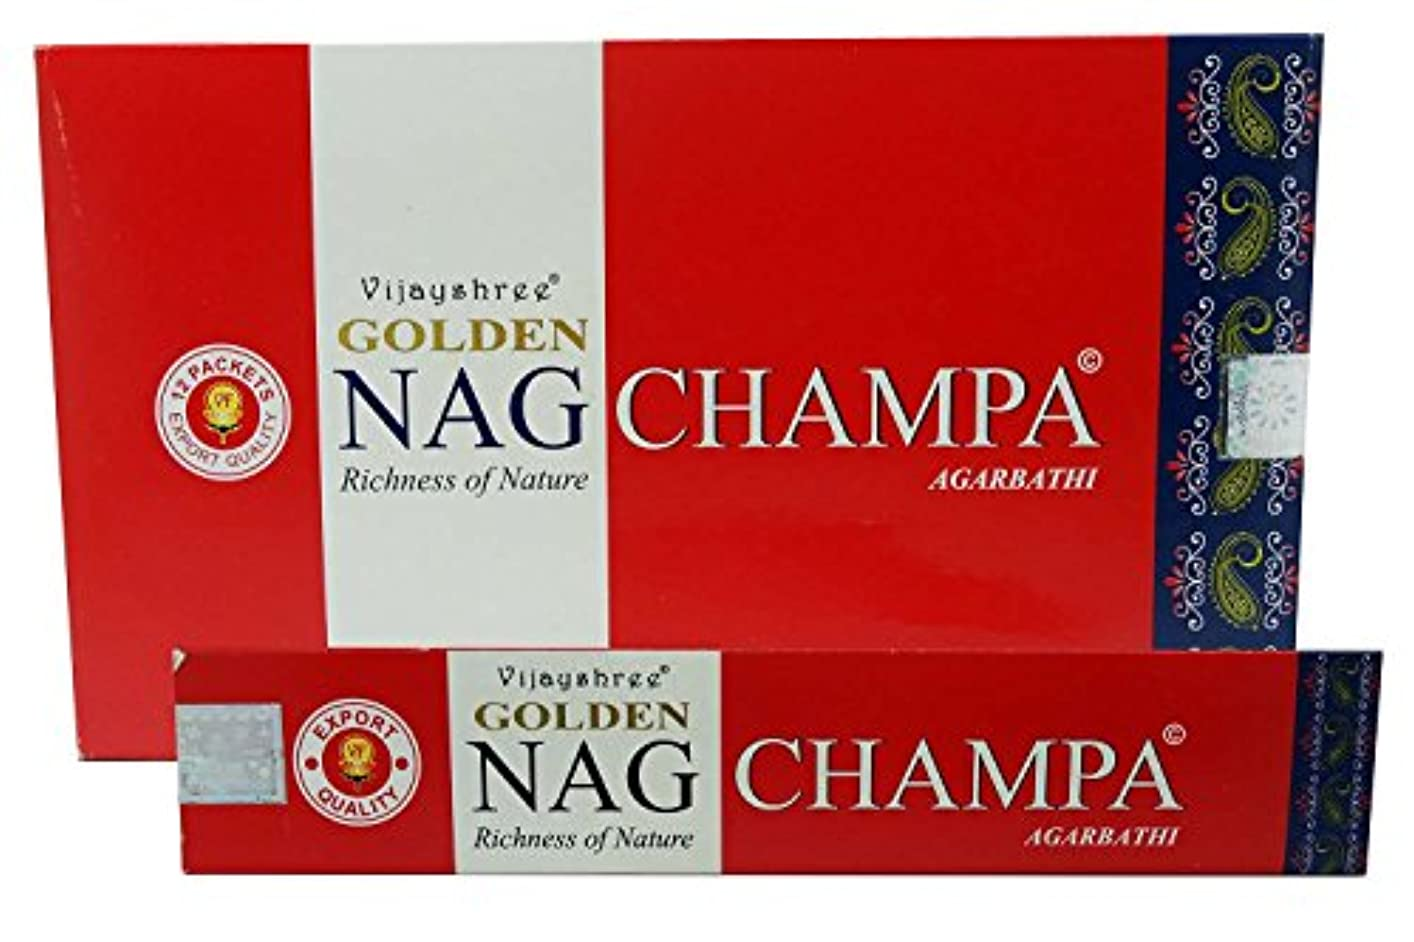 シリンダー抵抗する債務Agarbathi Vijayshree Golden Nag Champa Incense Sticks 15 g x 12